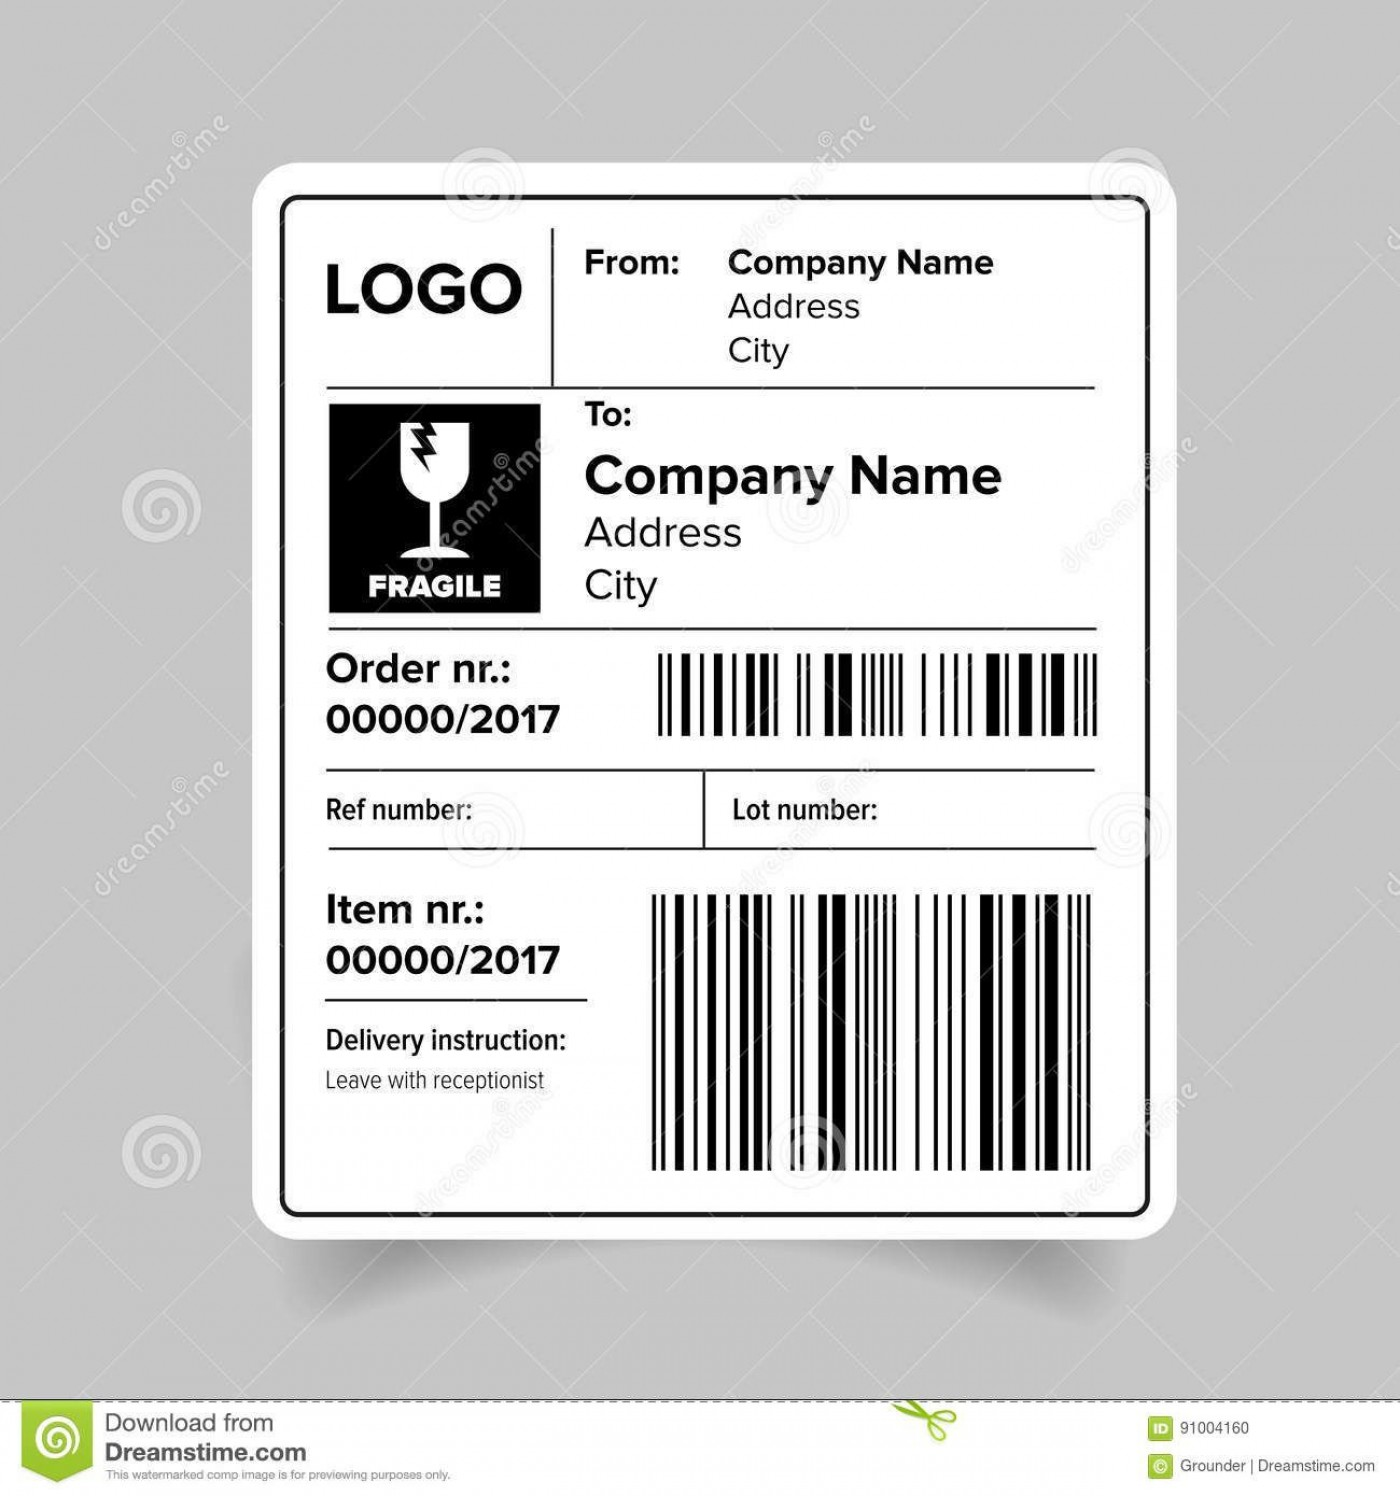 008 Dreaded Free Online Shipping Label Template Highest Quality 1400